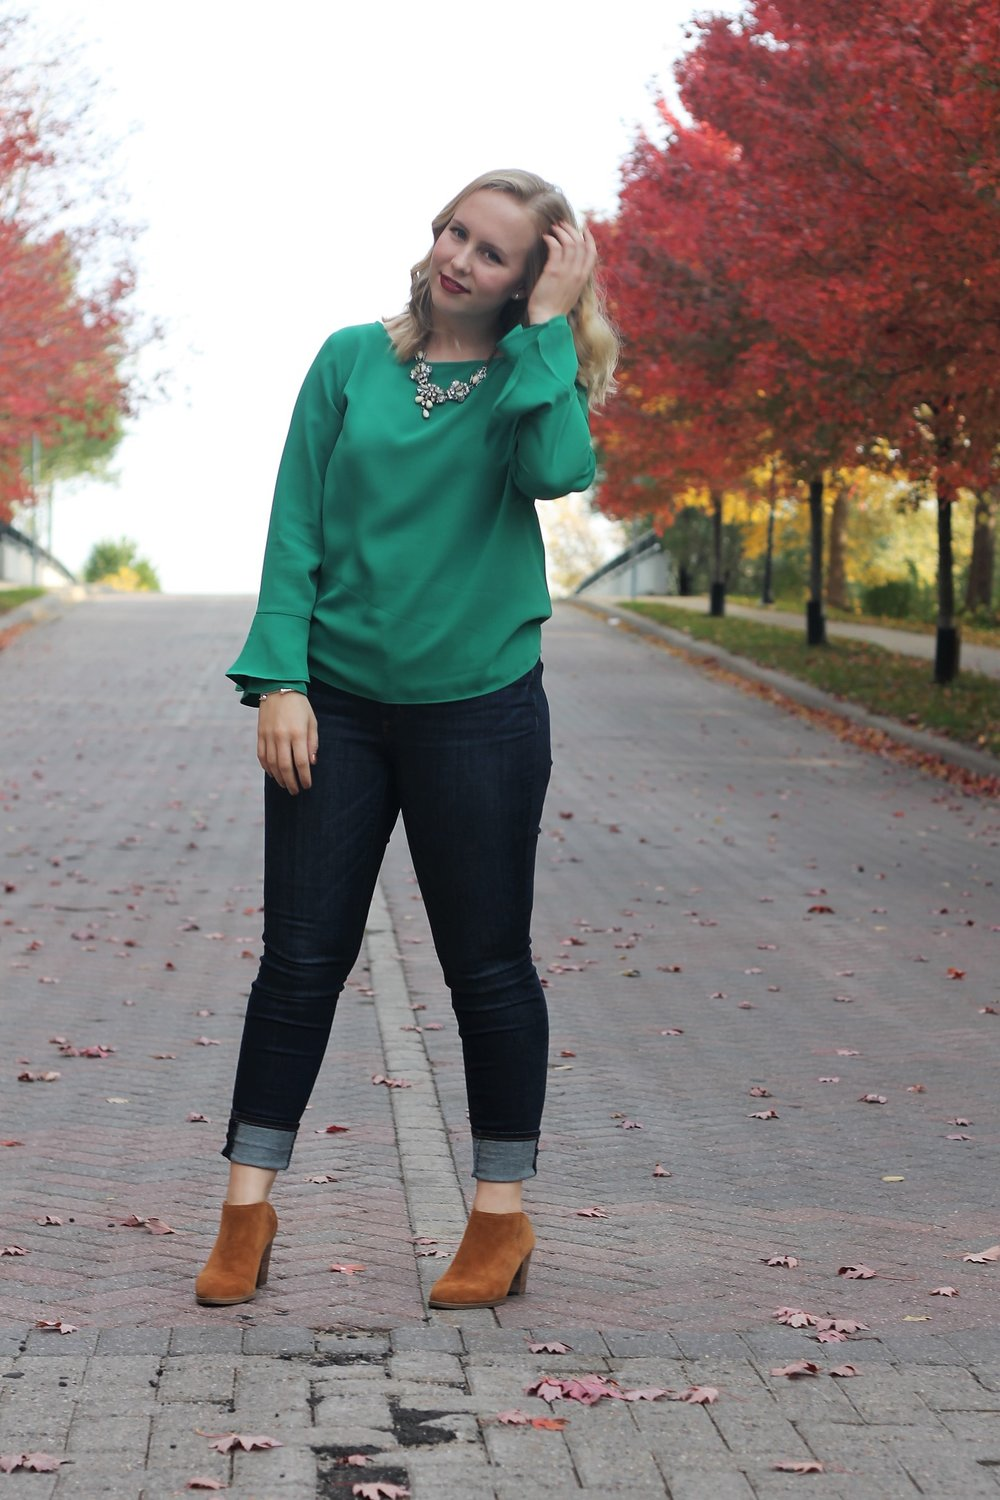 Snappy Casual | Kelly Green and Denim | Work & What She Wore